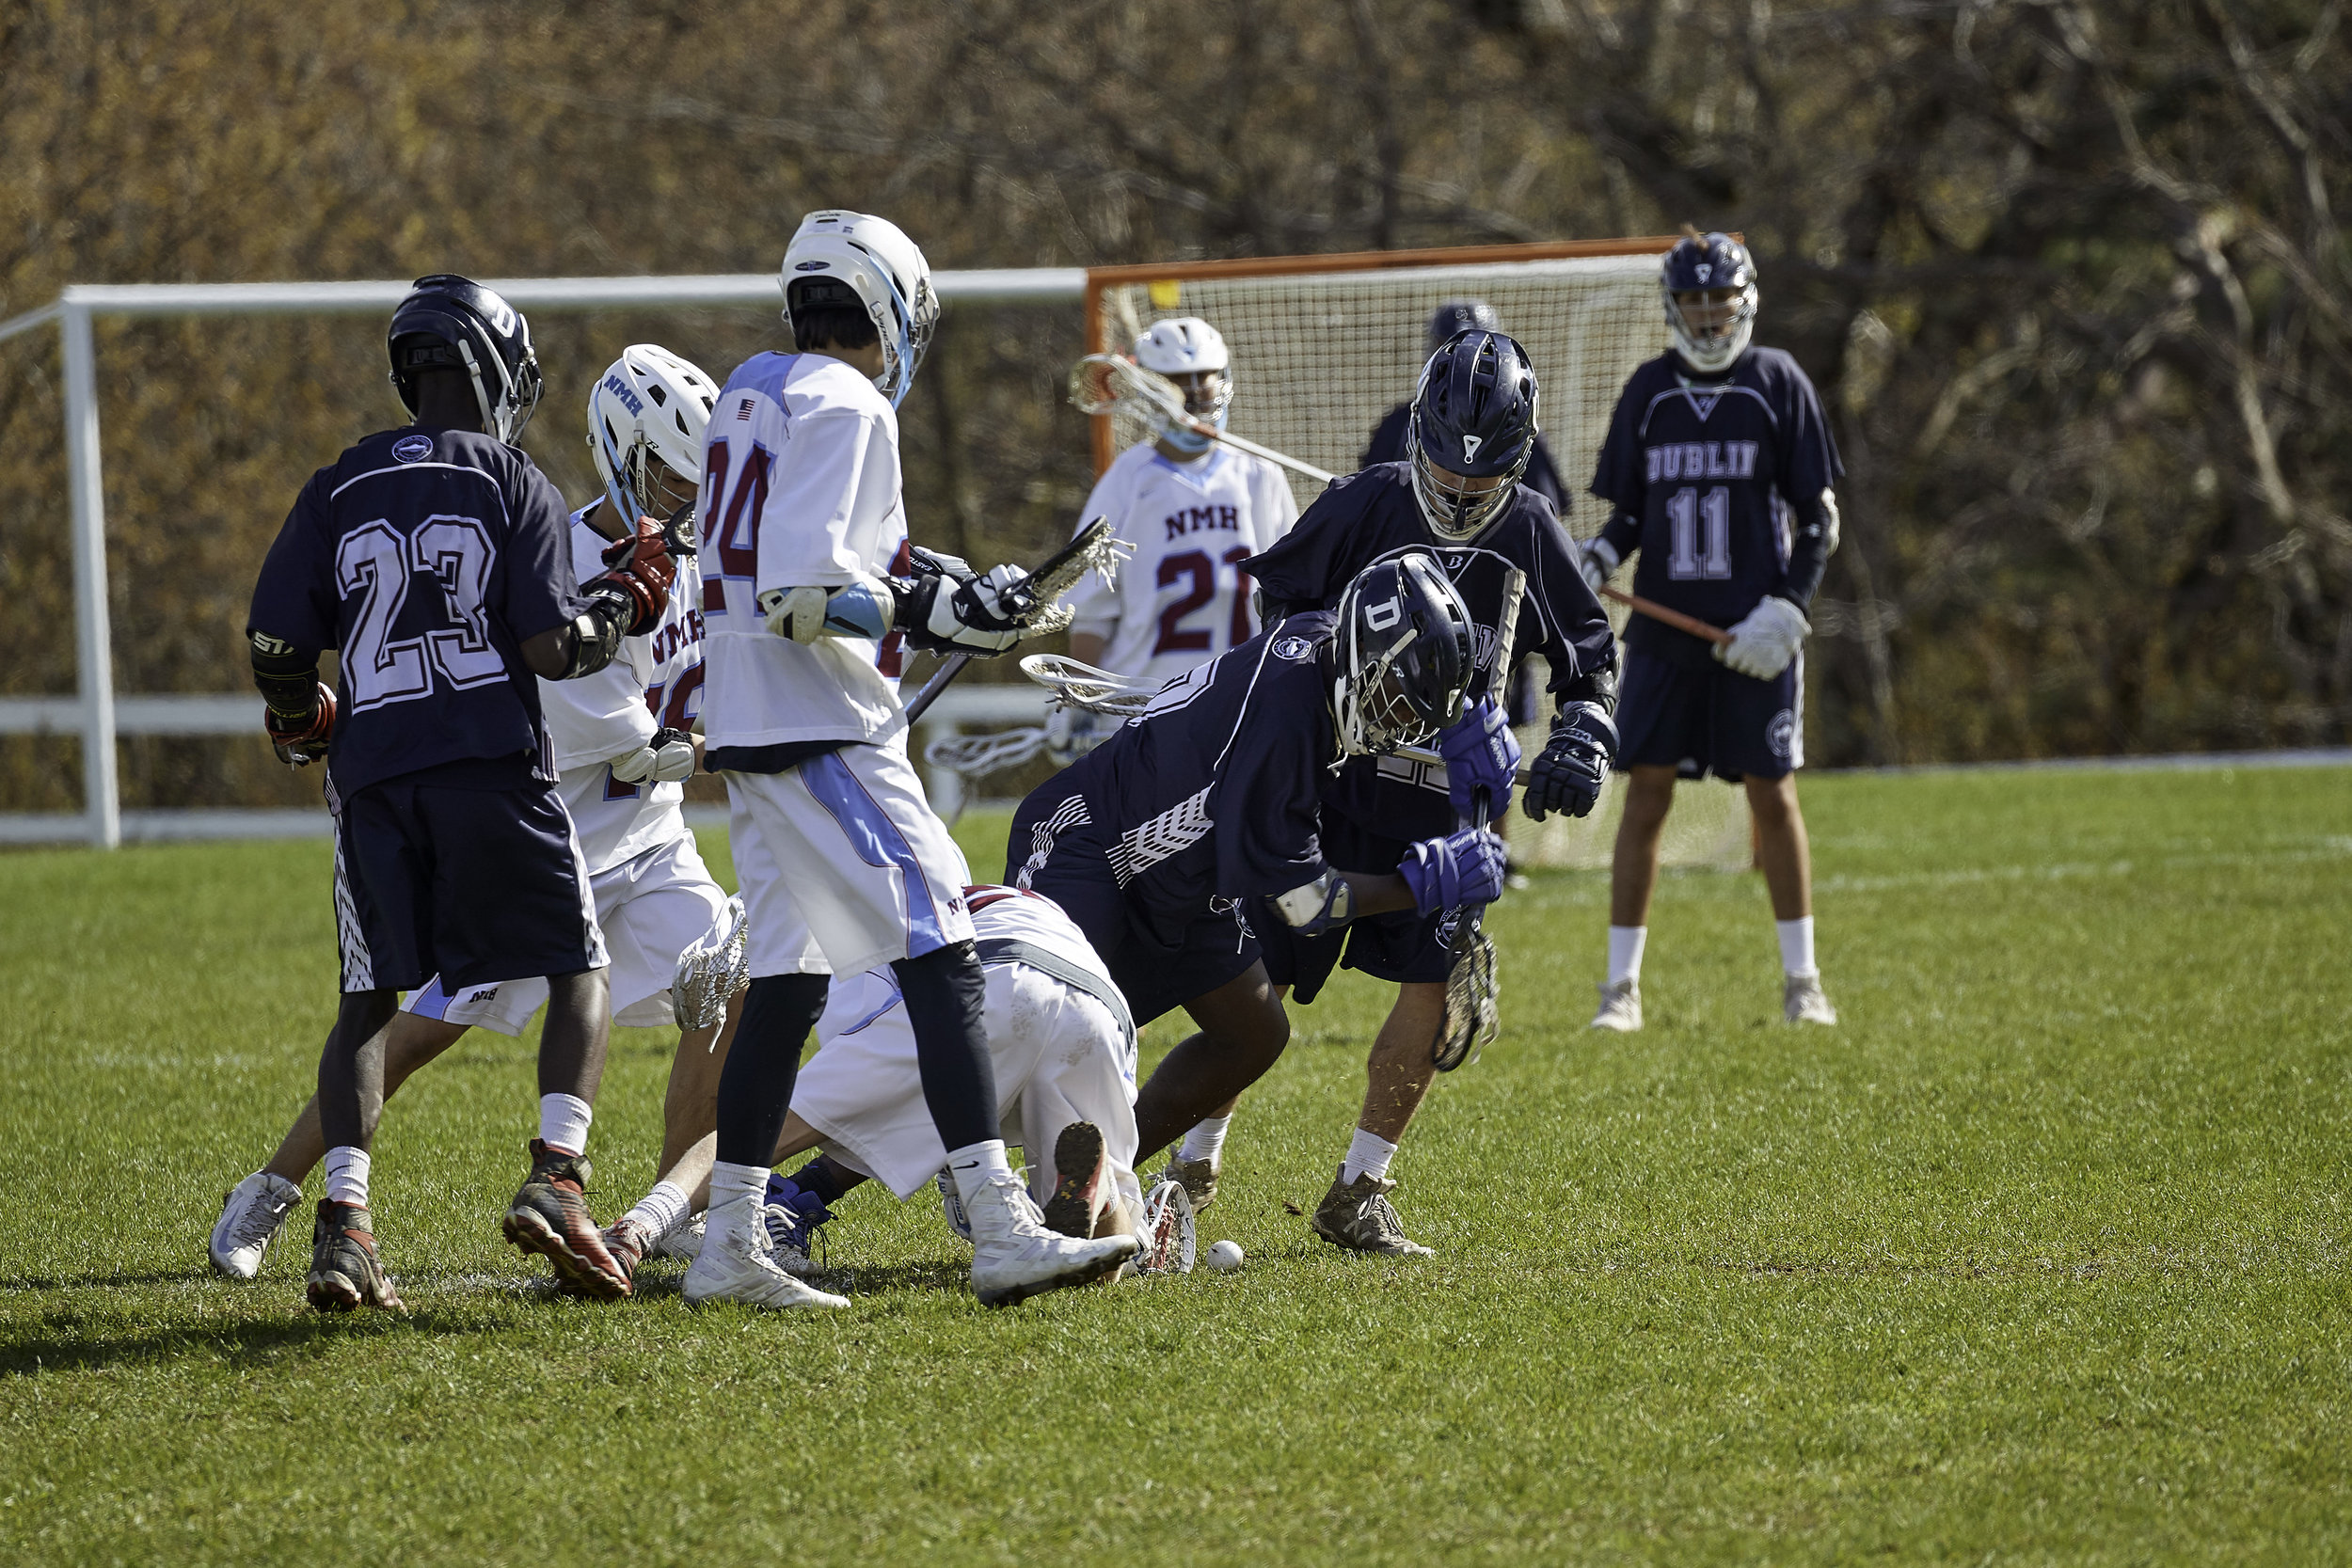 Boys Lax vs Northfield Mount Hermon JV - May 15 2019 - 0061.jpg